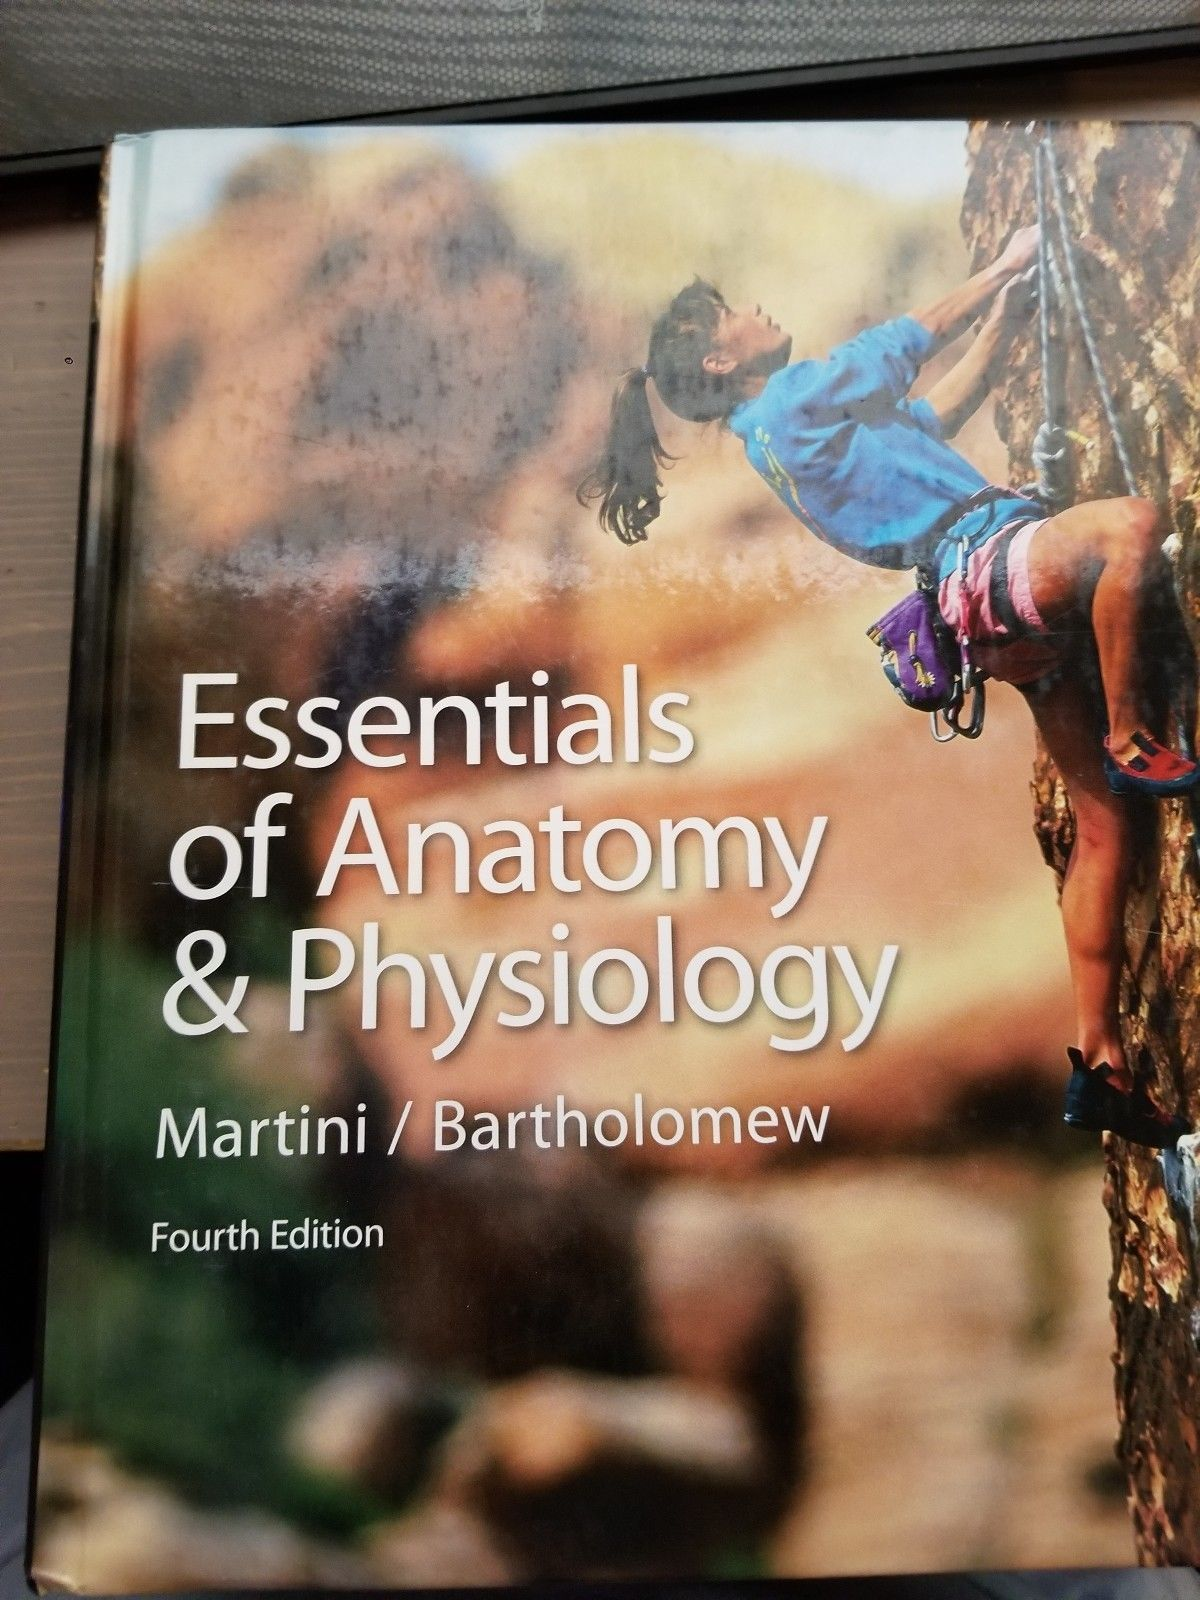 Enchanting Fundamentals Of Anatomy And Physiology By Martini 8th ...